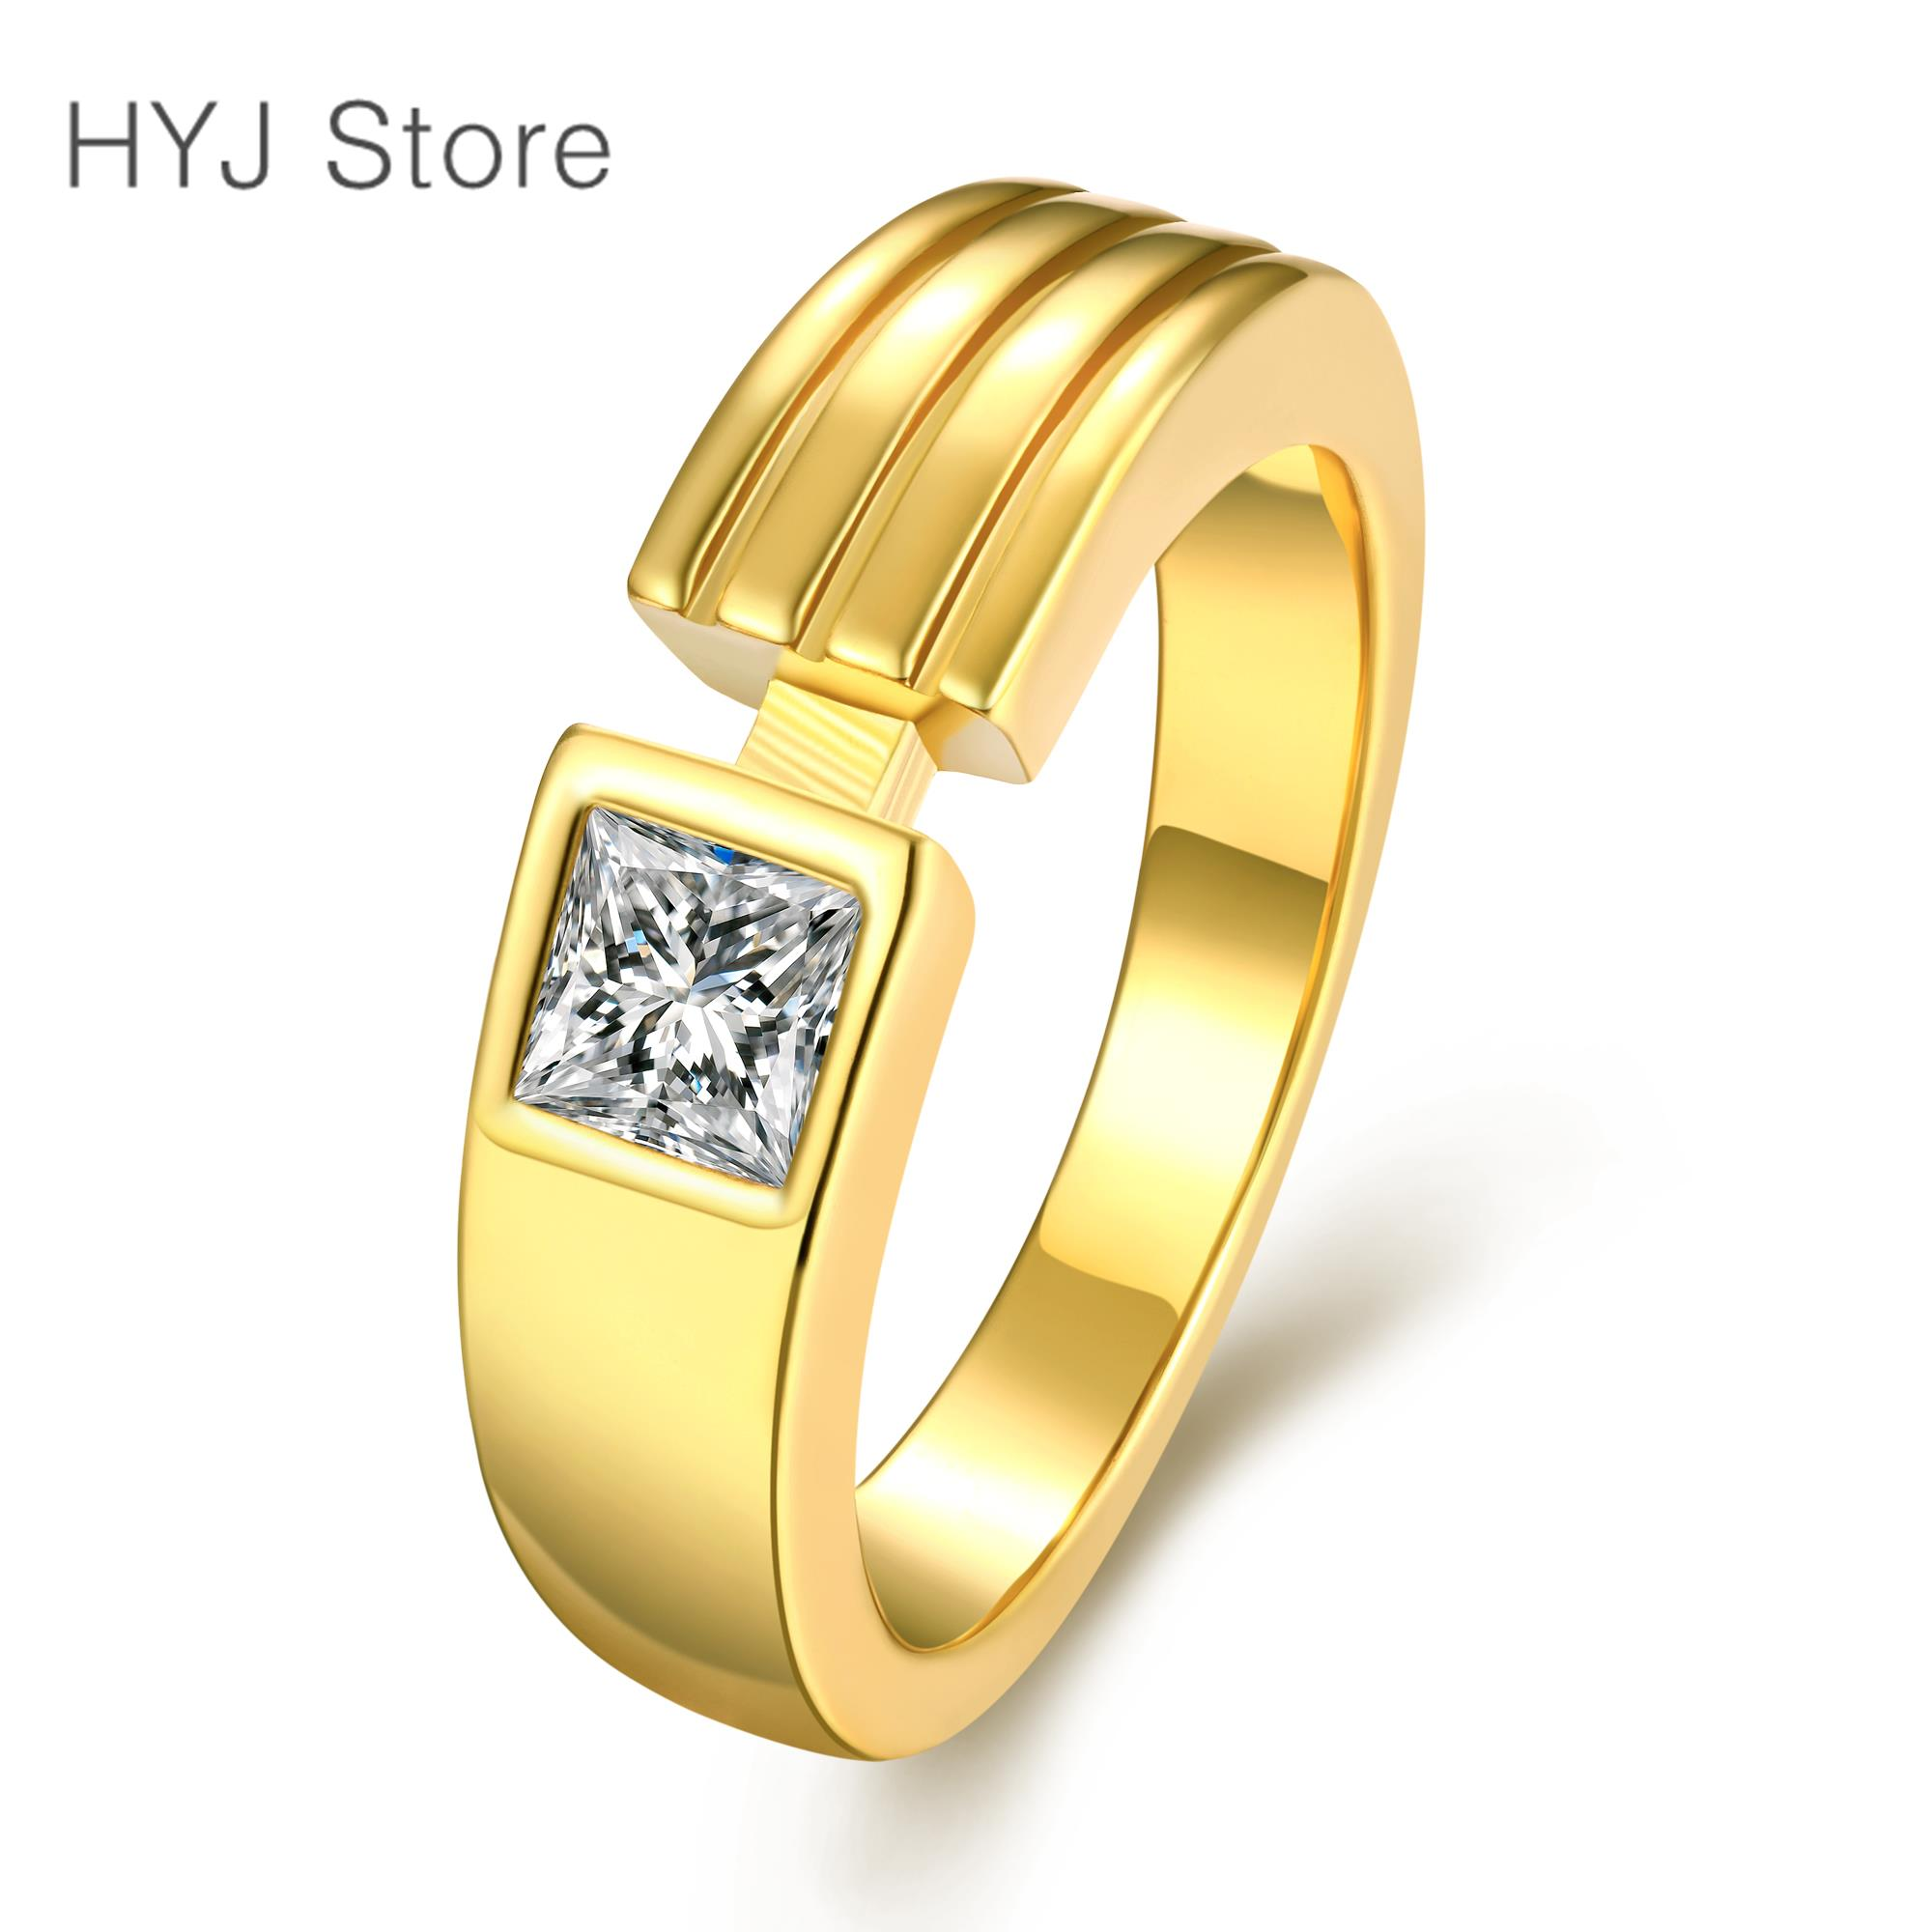 handphone of lovely original rings mobius by to wedding tablet ring download gold desktop back images size best